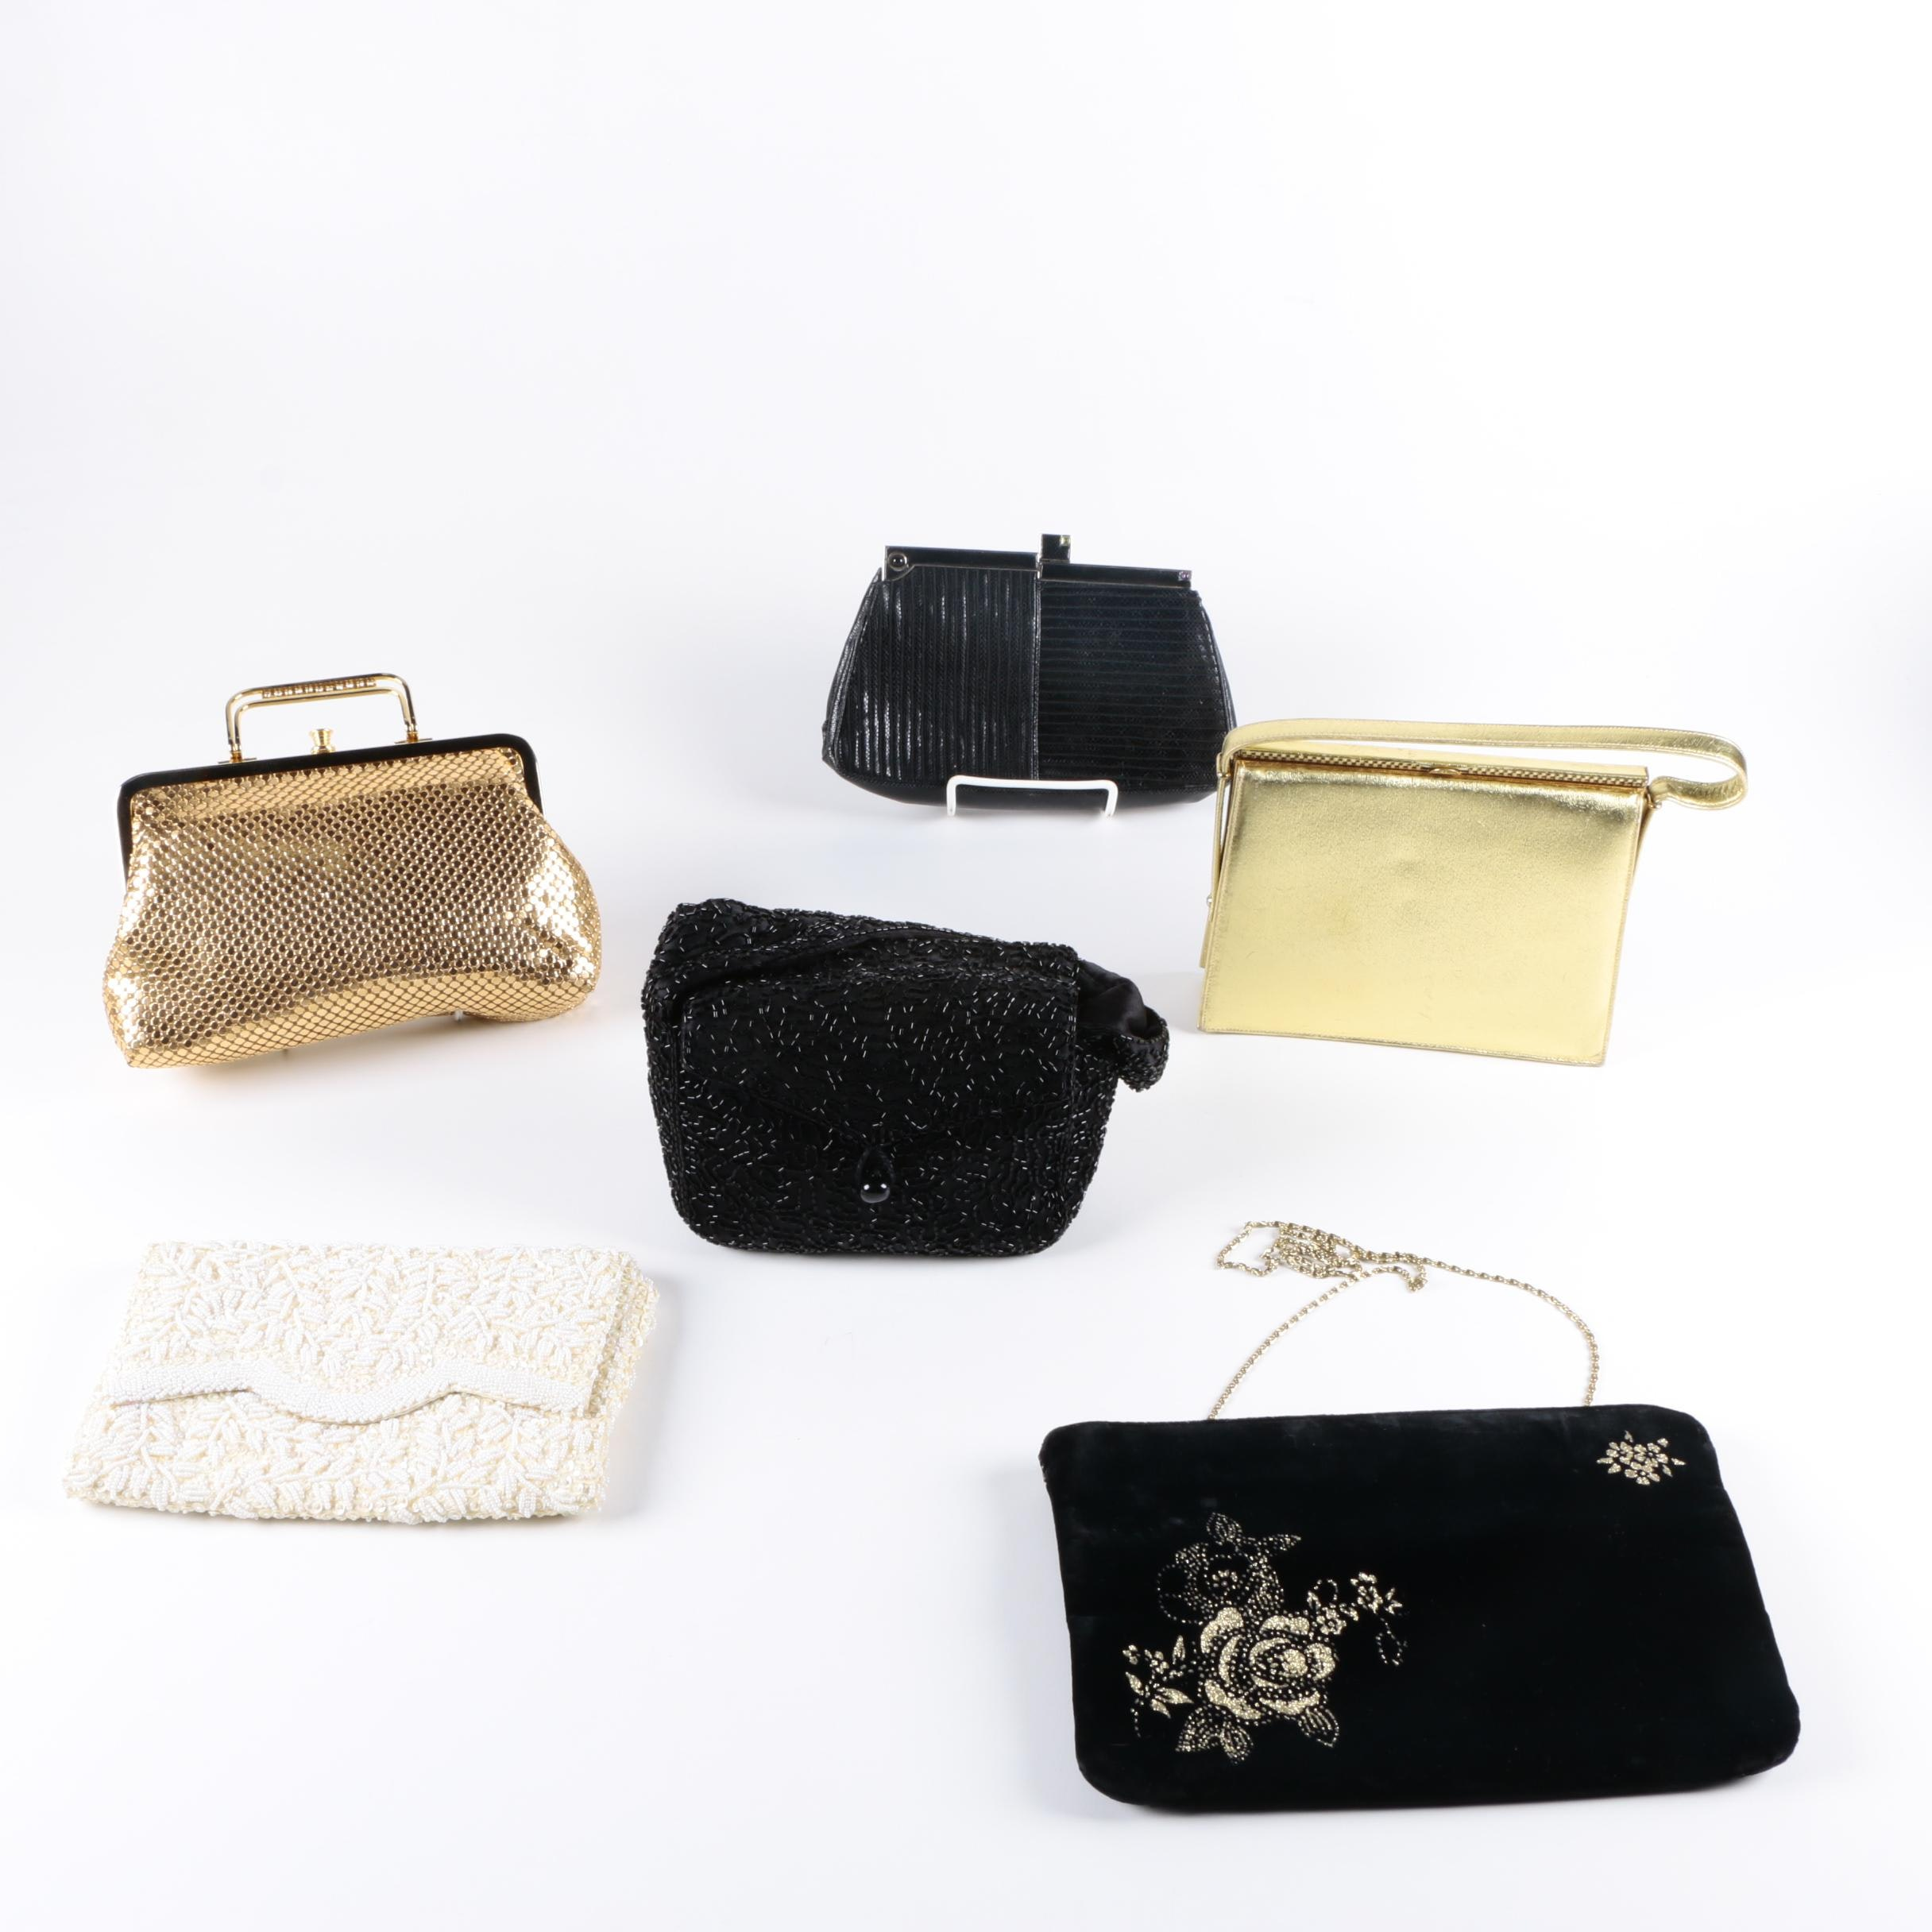 Vintage Handbags Including Judith Leiber